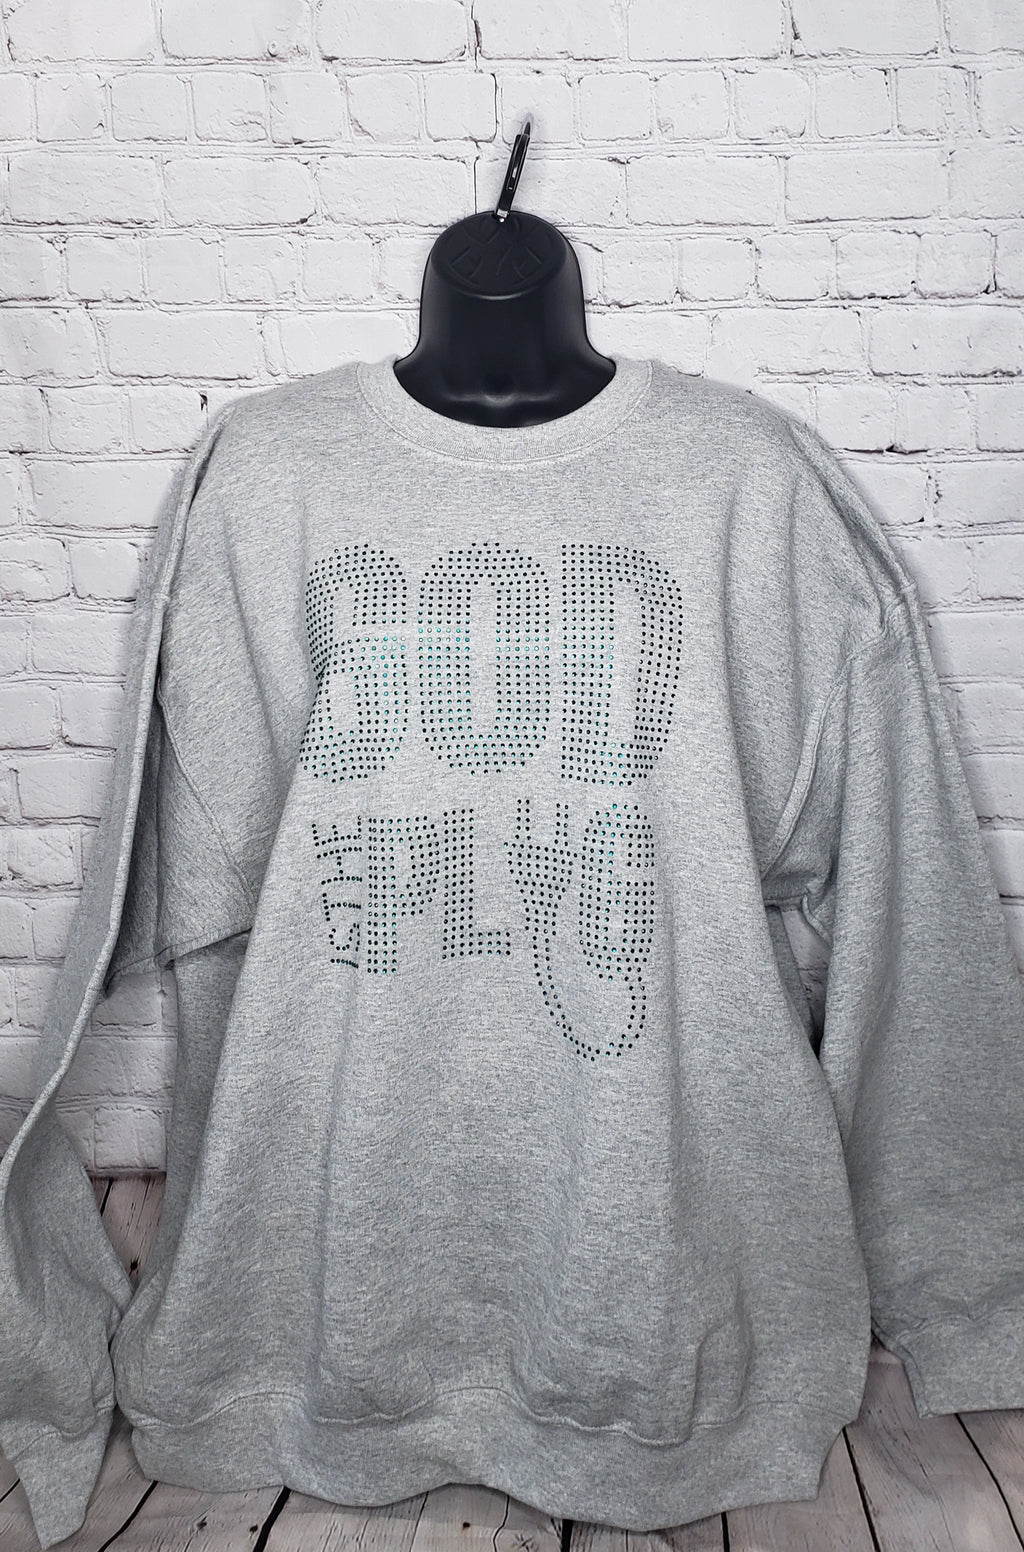 God Is The Plug Rhinestone Sweatshirt- XL Unisex